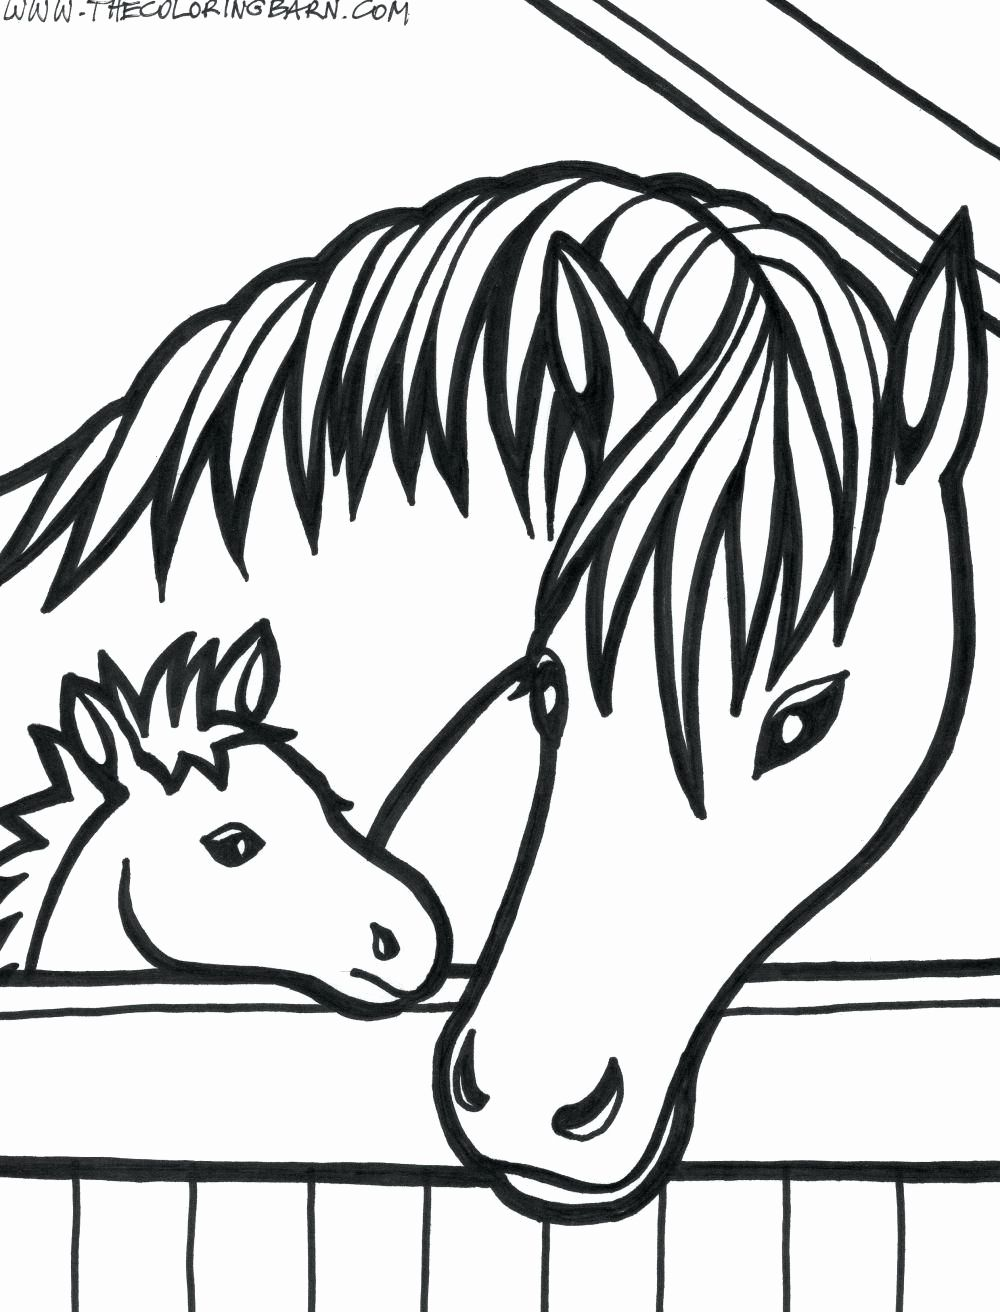 Baby Horse Coloring Pages For Kids Horse Coloring Pages Farm Animal Coloring Pages Horse Coloring